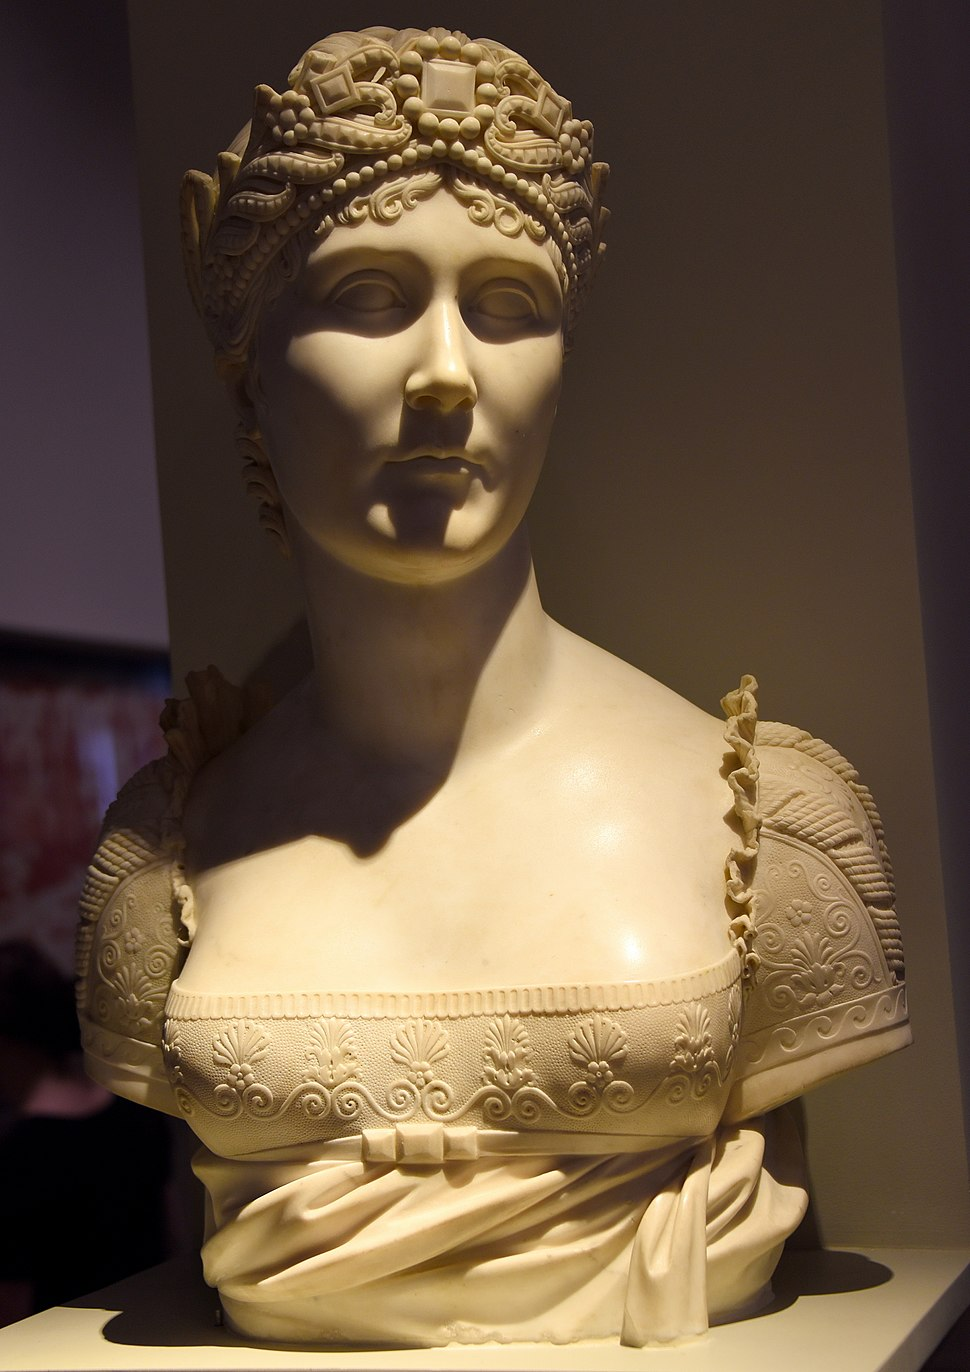 Bust of Josephine Bonaparte, c. 1808 CE. Marble, from Paris, France. By Joseph Chinard. Bequeathed by Miss F.H. Spiers. The Victoria and Albert Museum, London